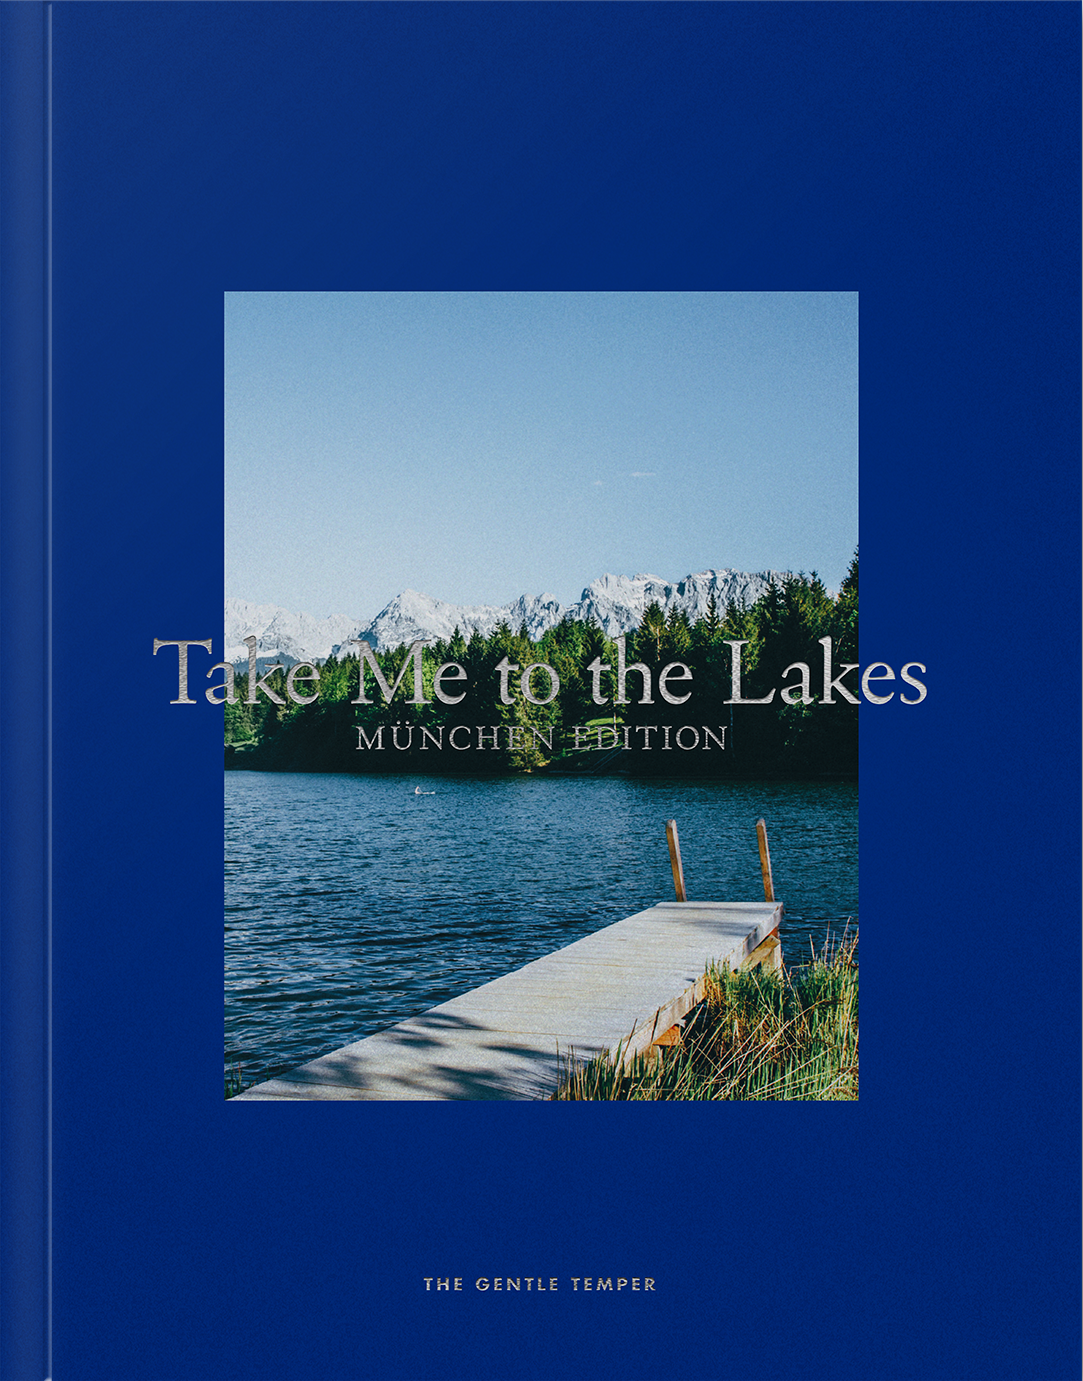 SAMPLE - Take Me to the Lakes - München Edition